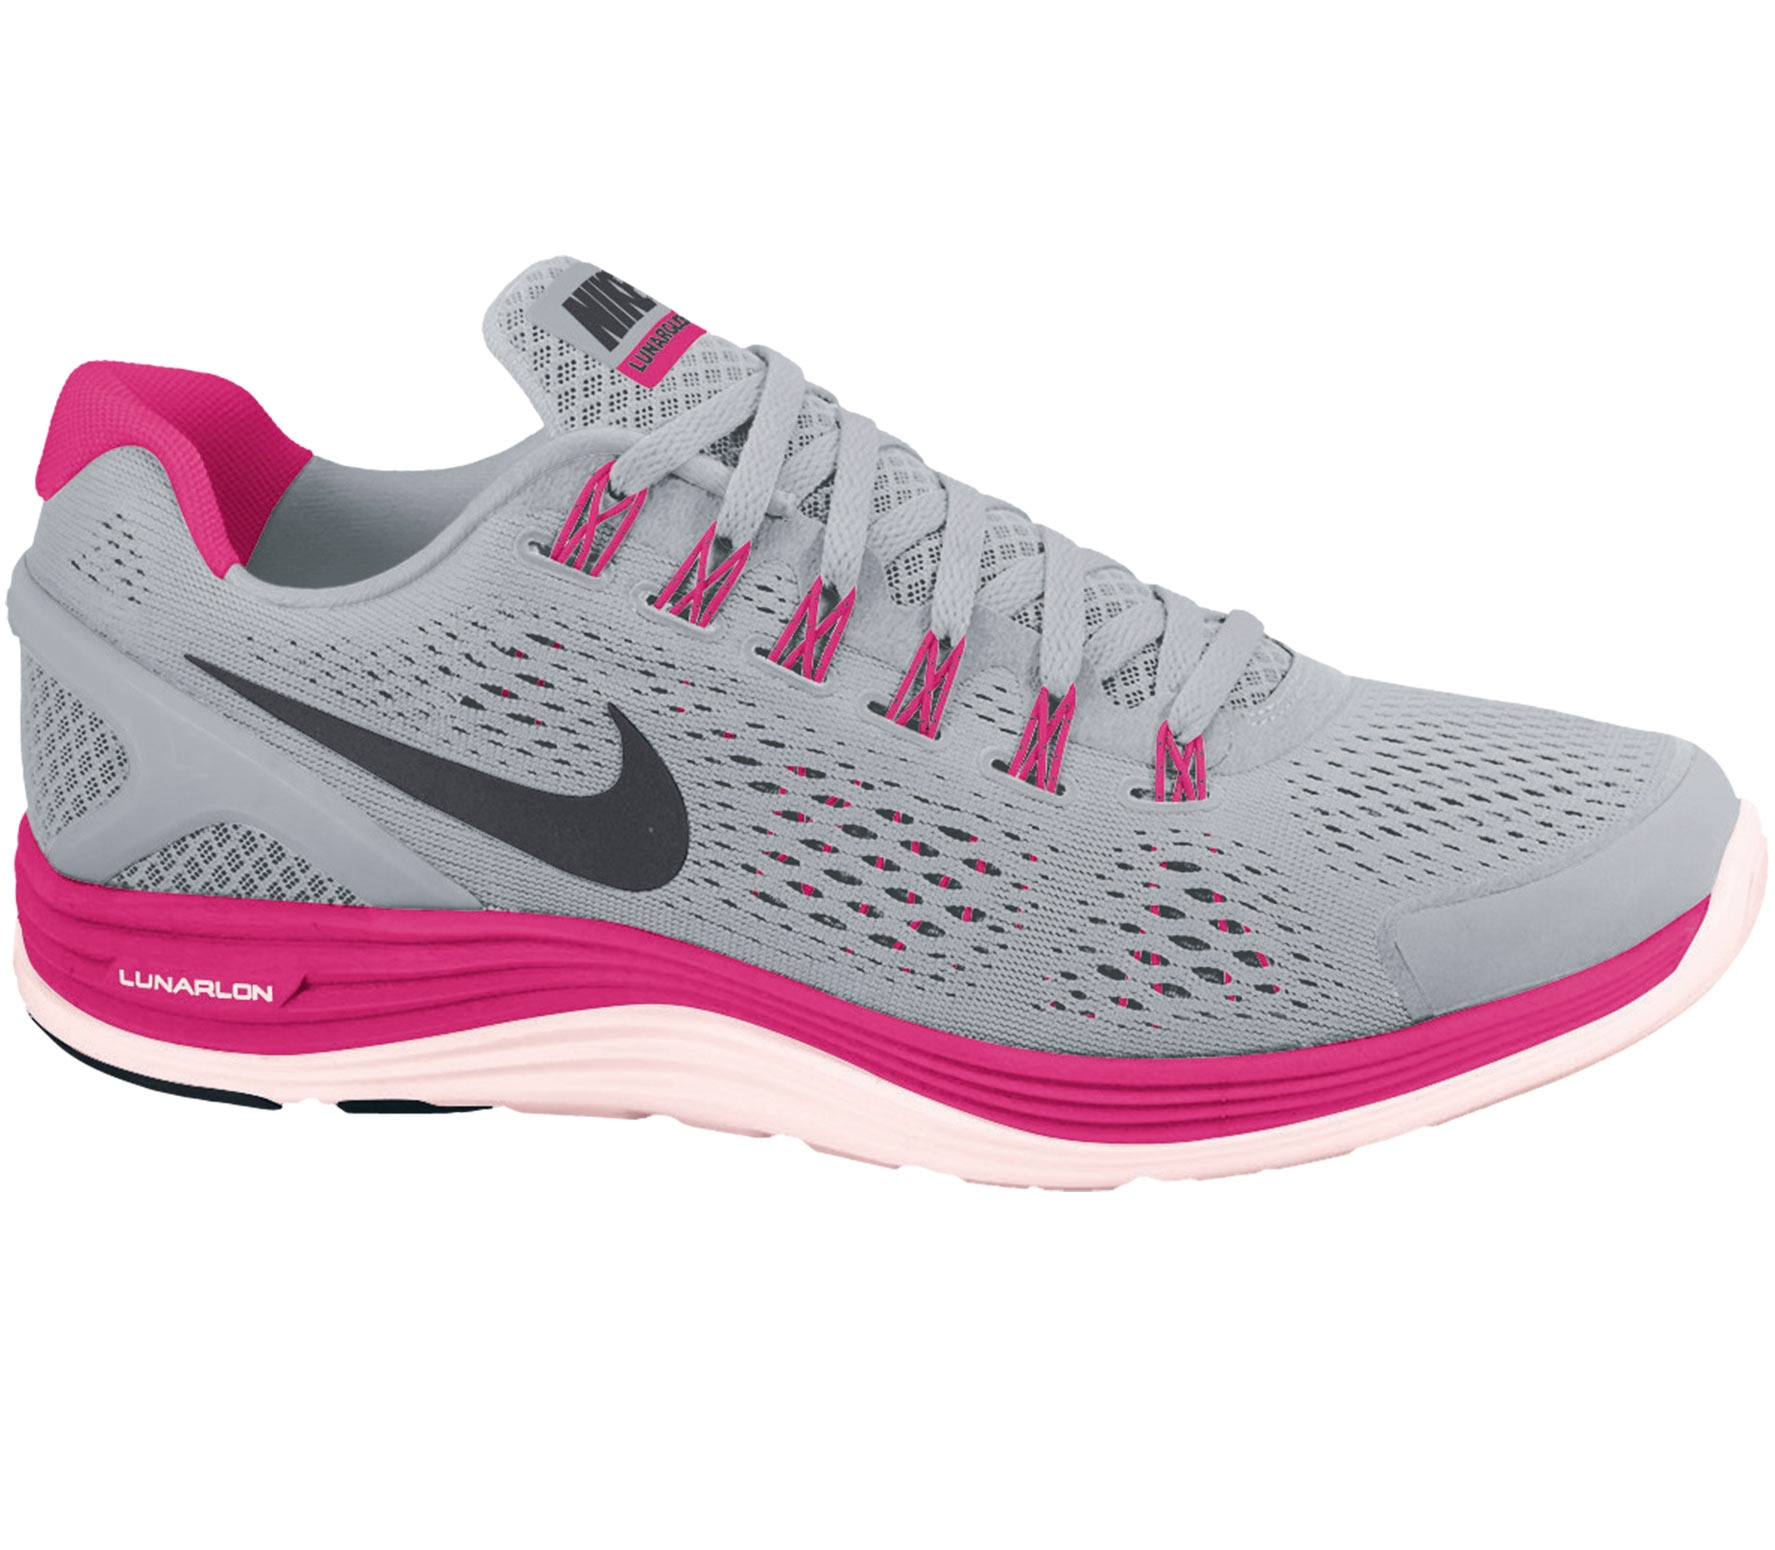 Nike - Running shoes Women Lunarglide + 4 - SU13